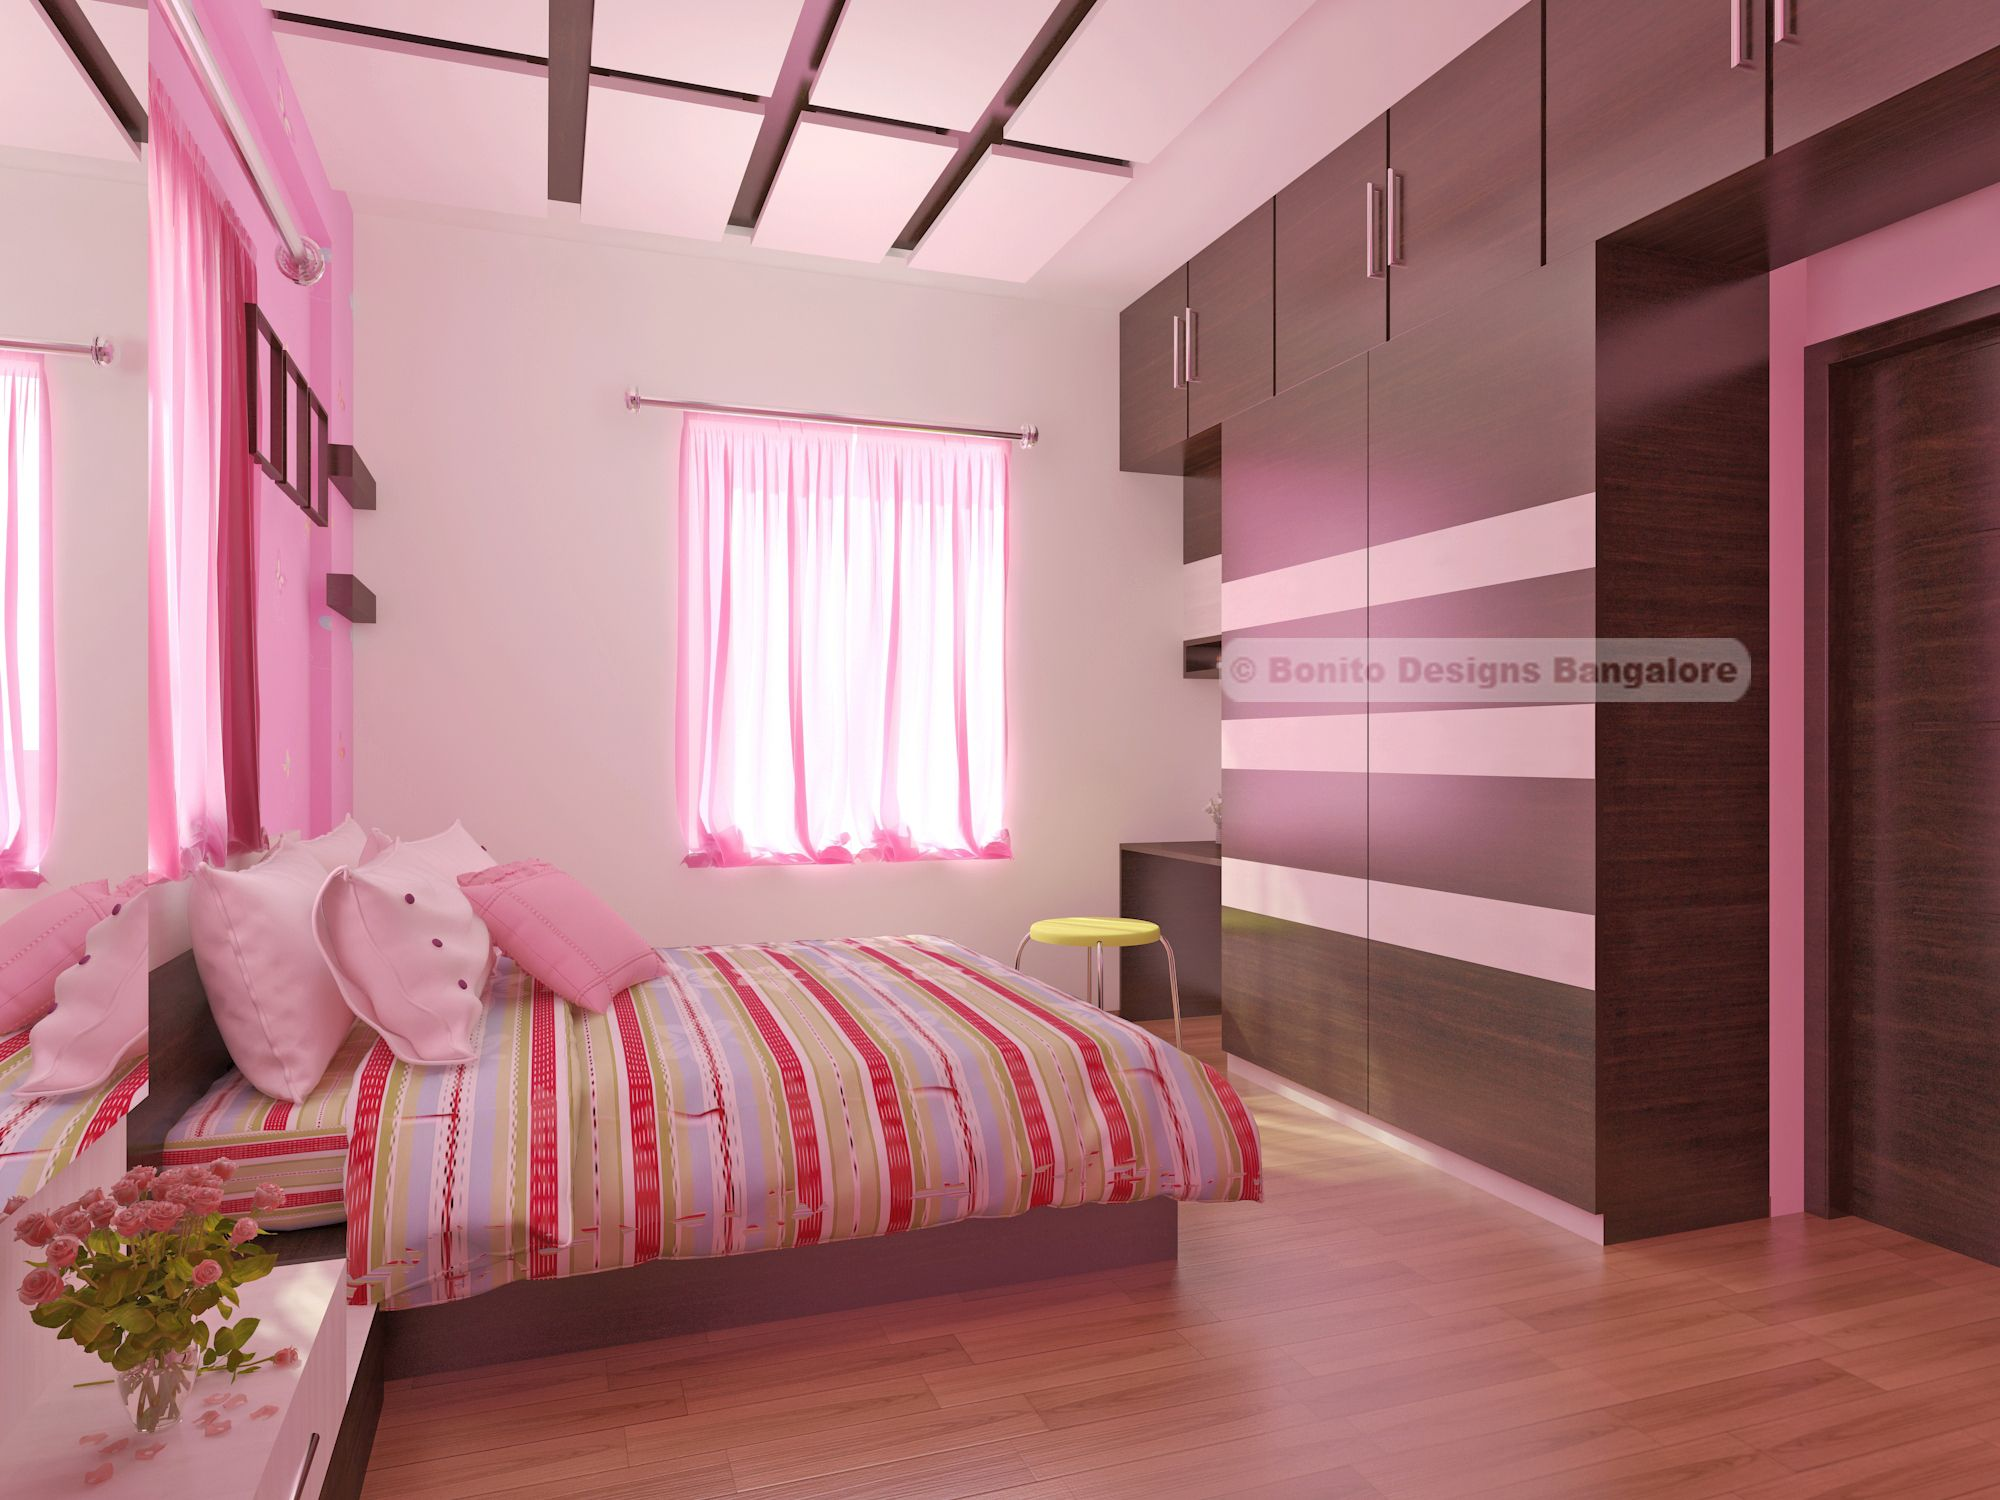 Latest Bedroom Interior Funky Funky Trendy Trendy Here We Bring Our Trendy Modular